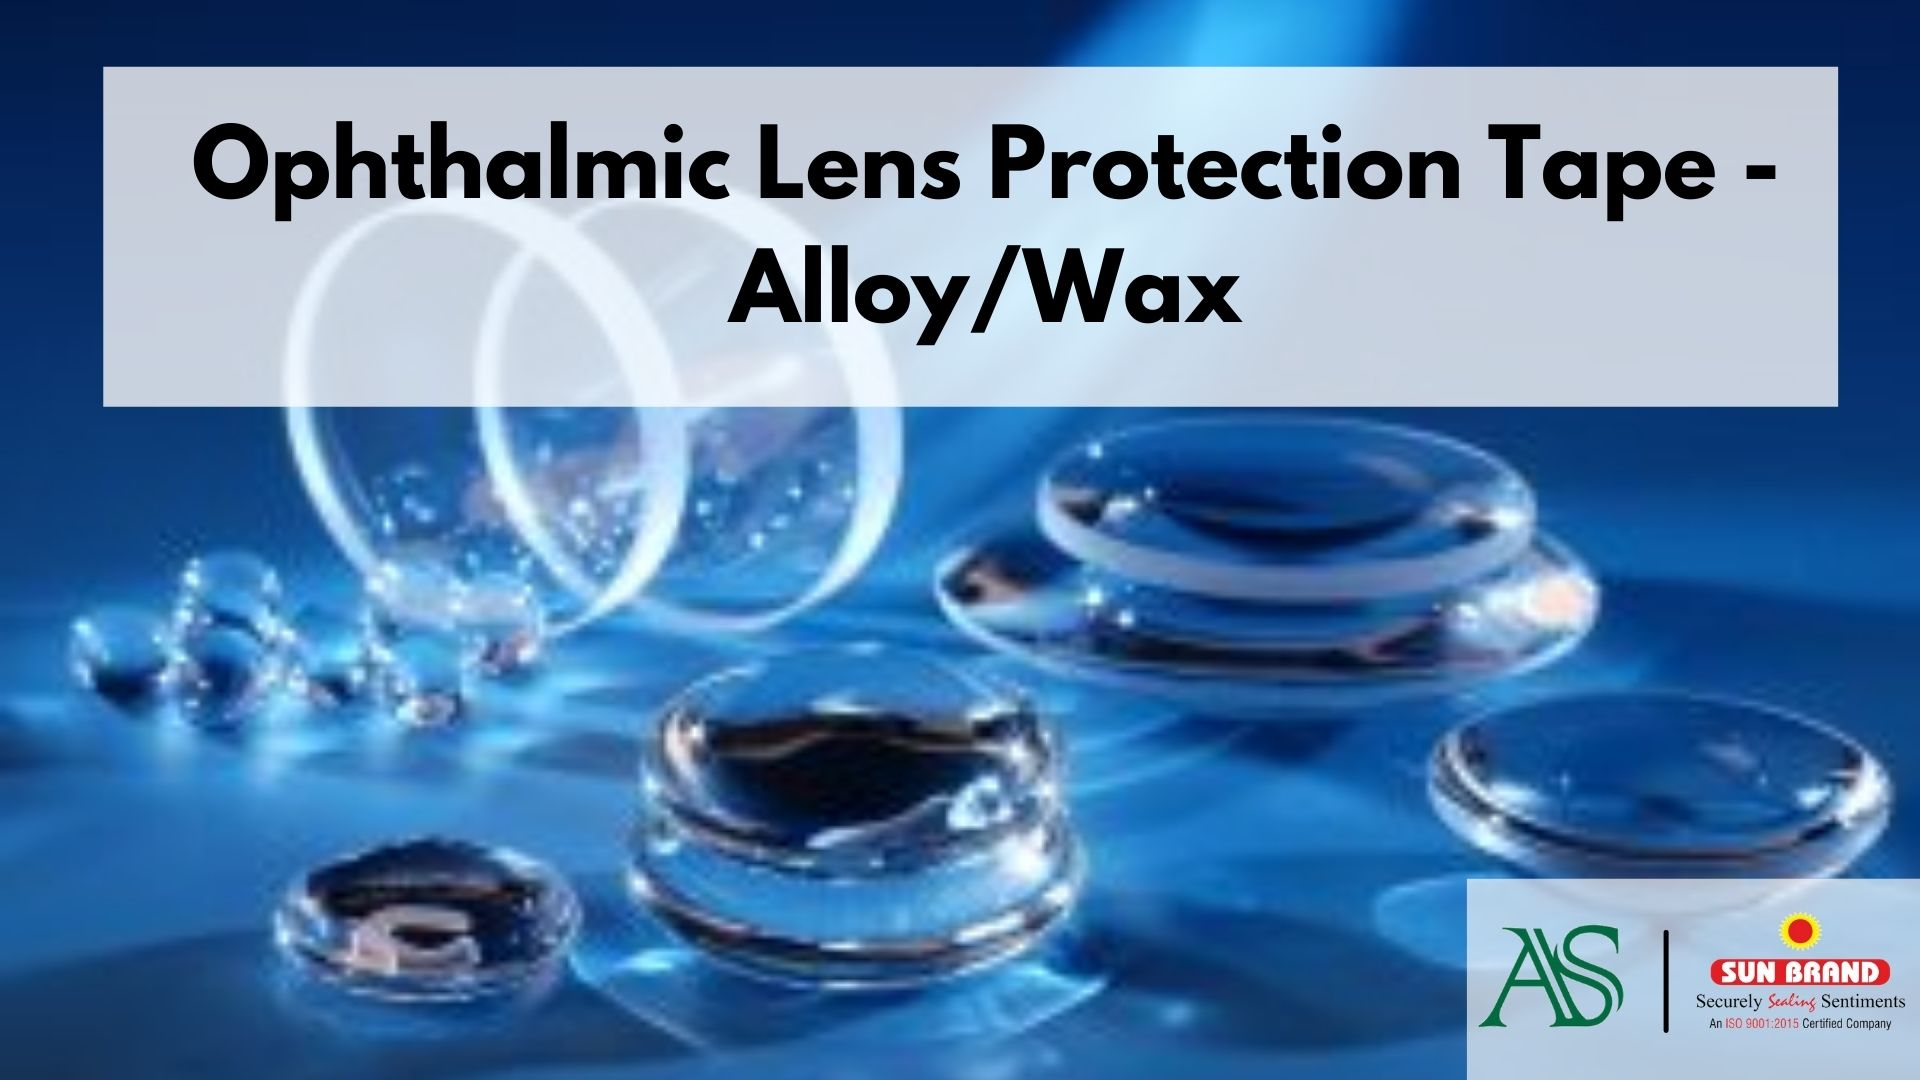 Ophthalmic Lens Protection Tape - Alloy/Wax